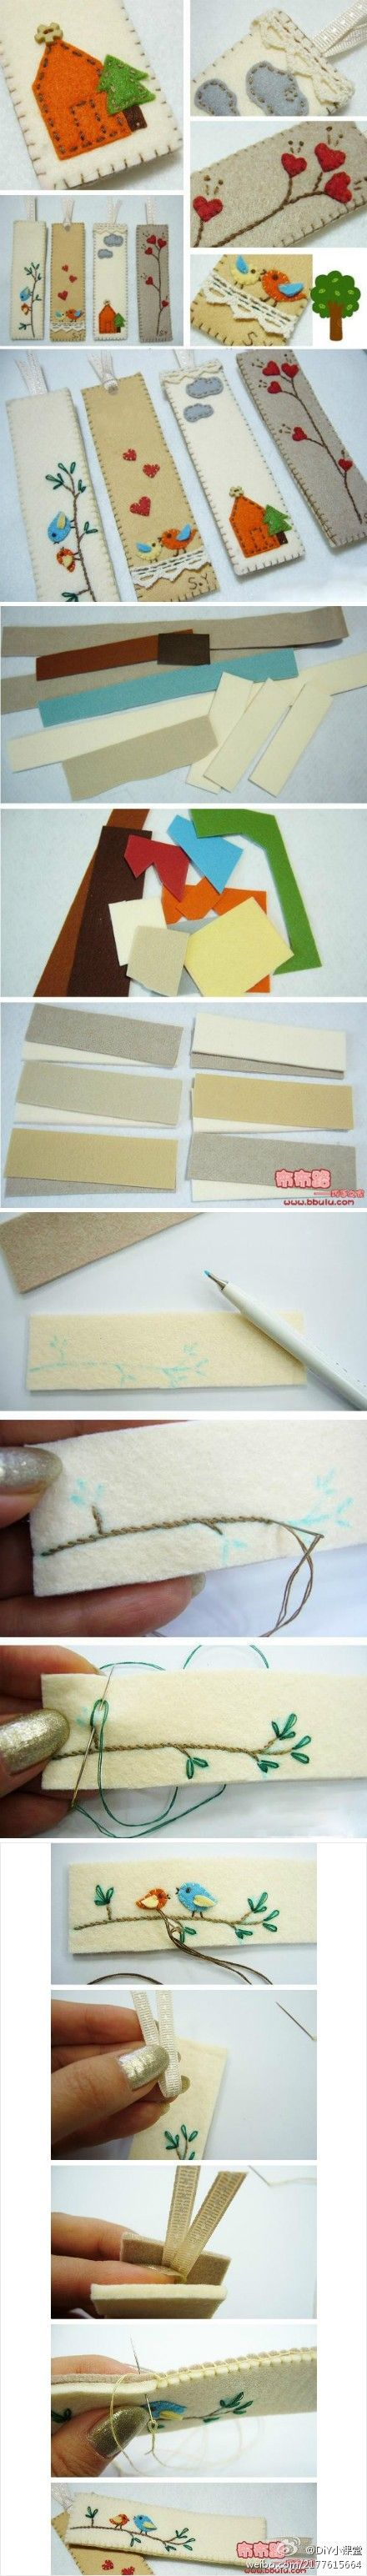 Embroidery ideas / bookmarks